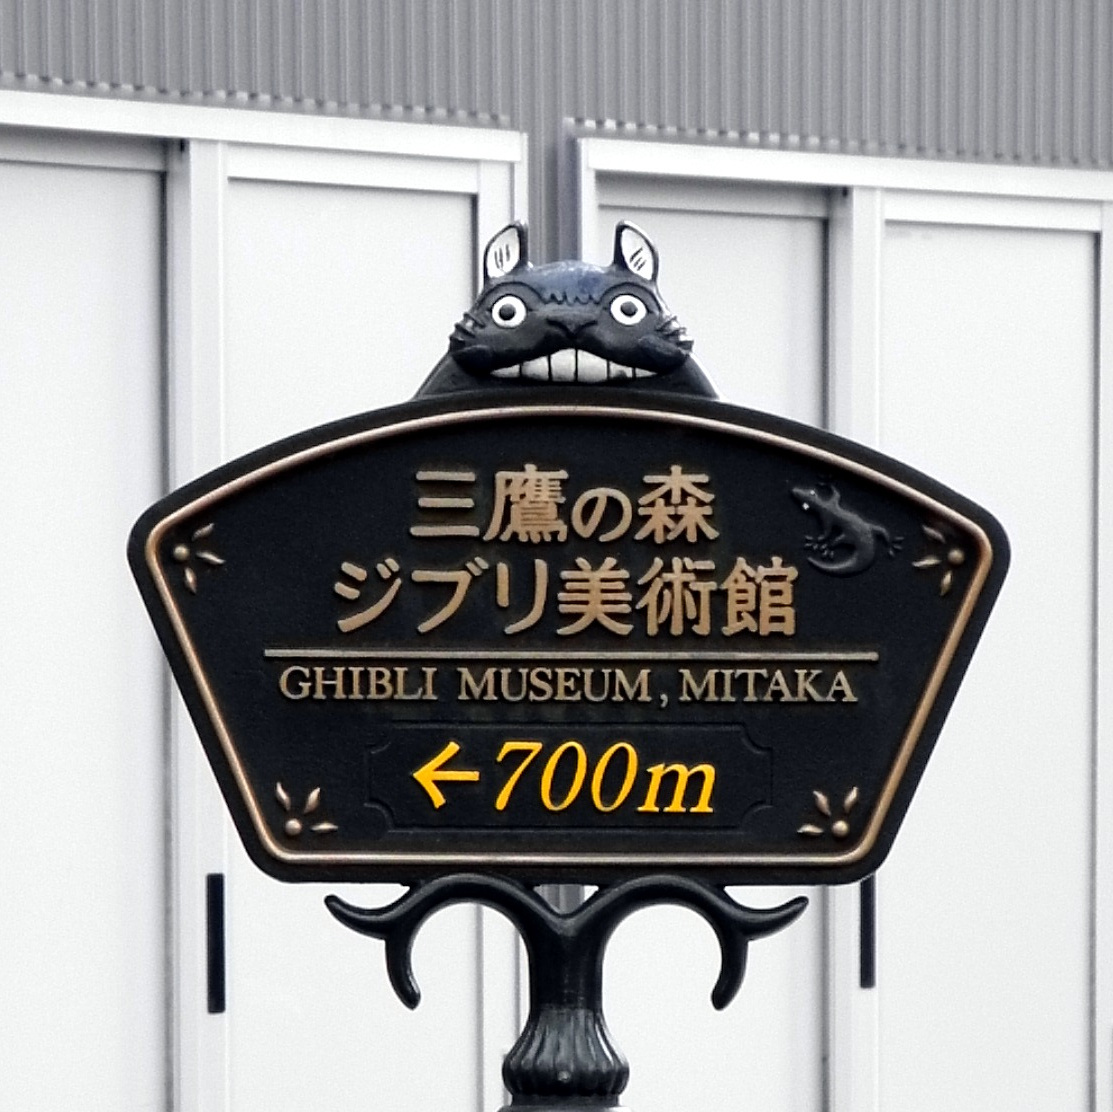 Studio Ghibli Museum The Real Japan